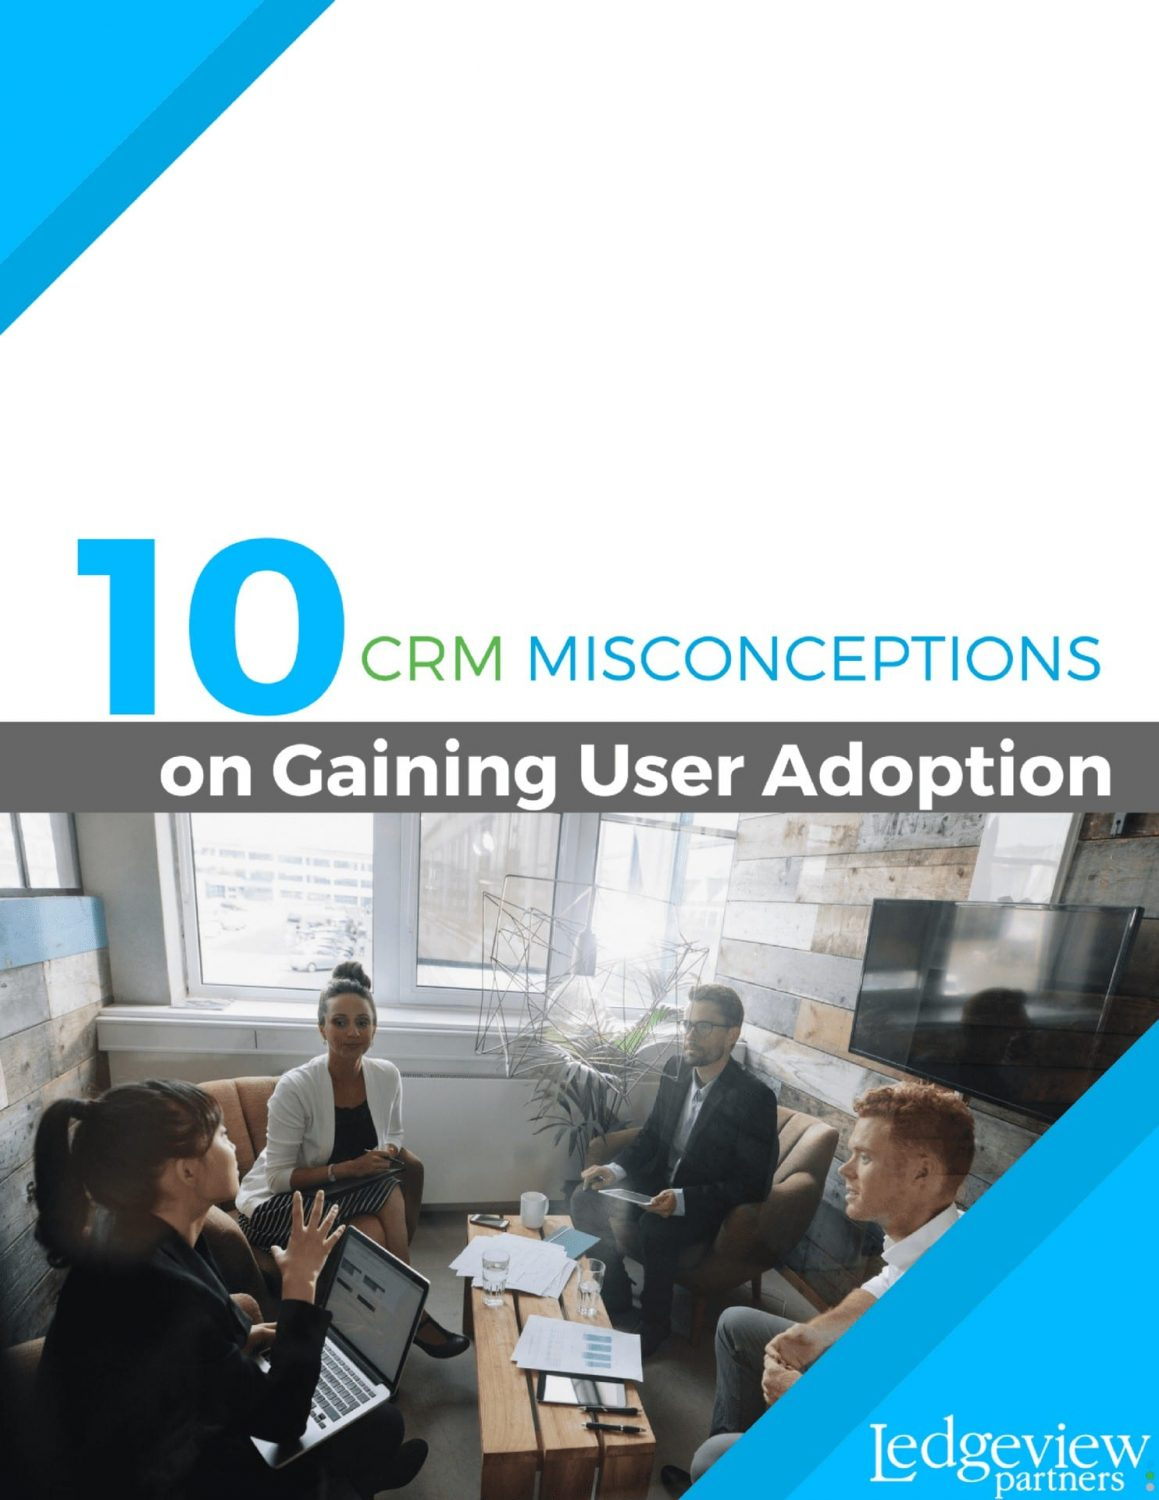 Ledgeview Partners eBook Debunking Common Misconceptions about CRM User Adoption